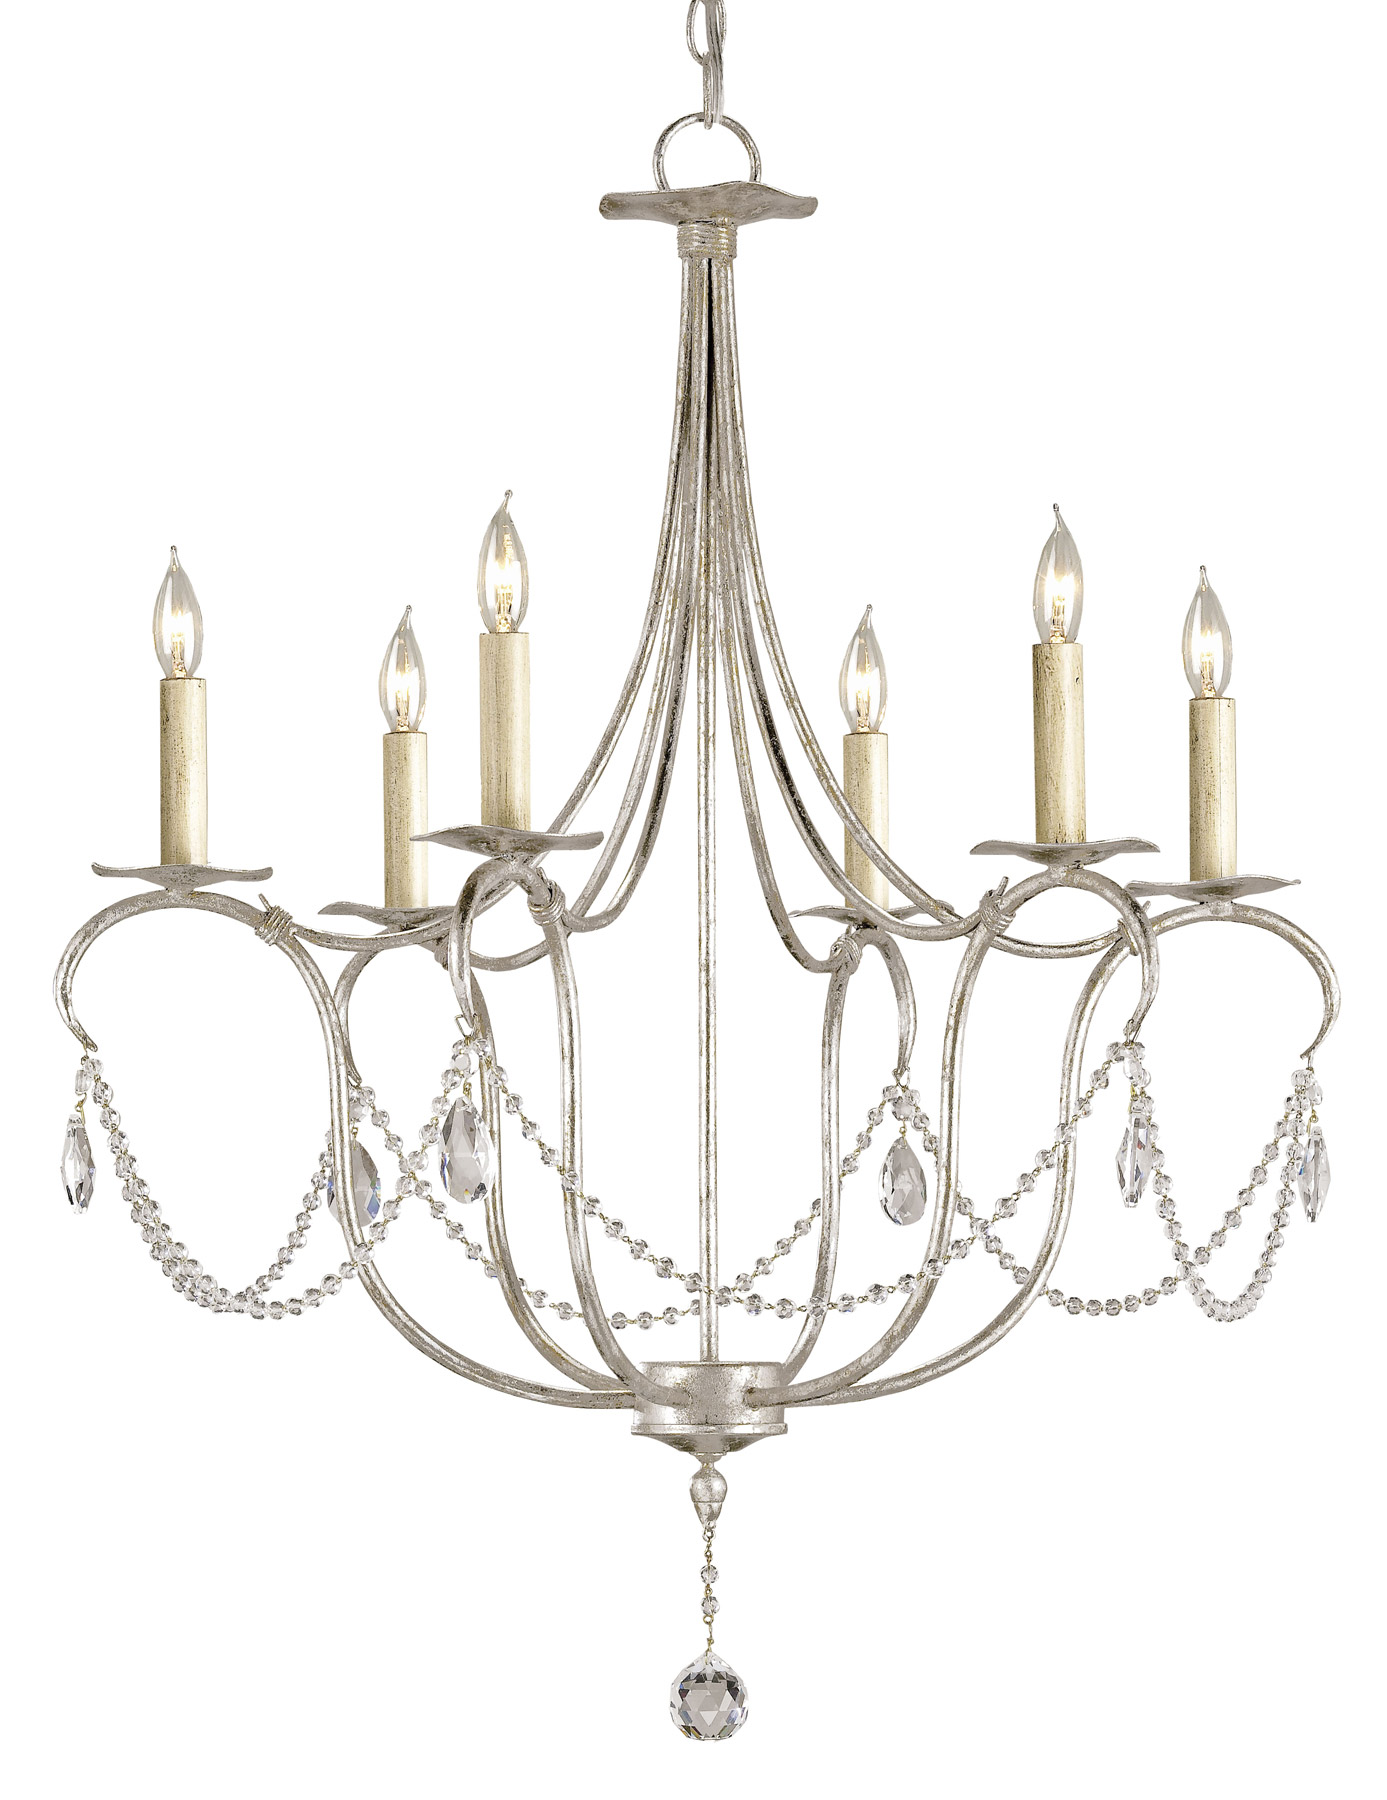 Currey and company 9890 crystal lights six light chandelier - Ceiling lights and chandeliers ...